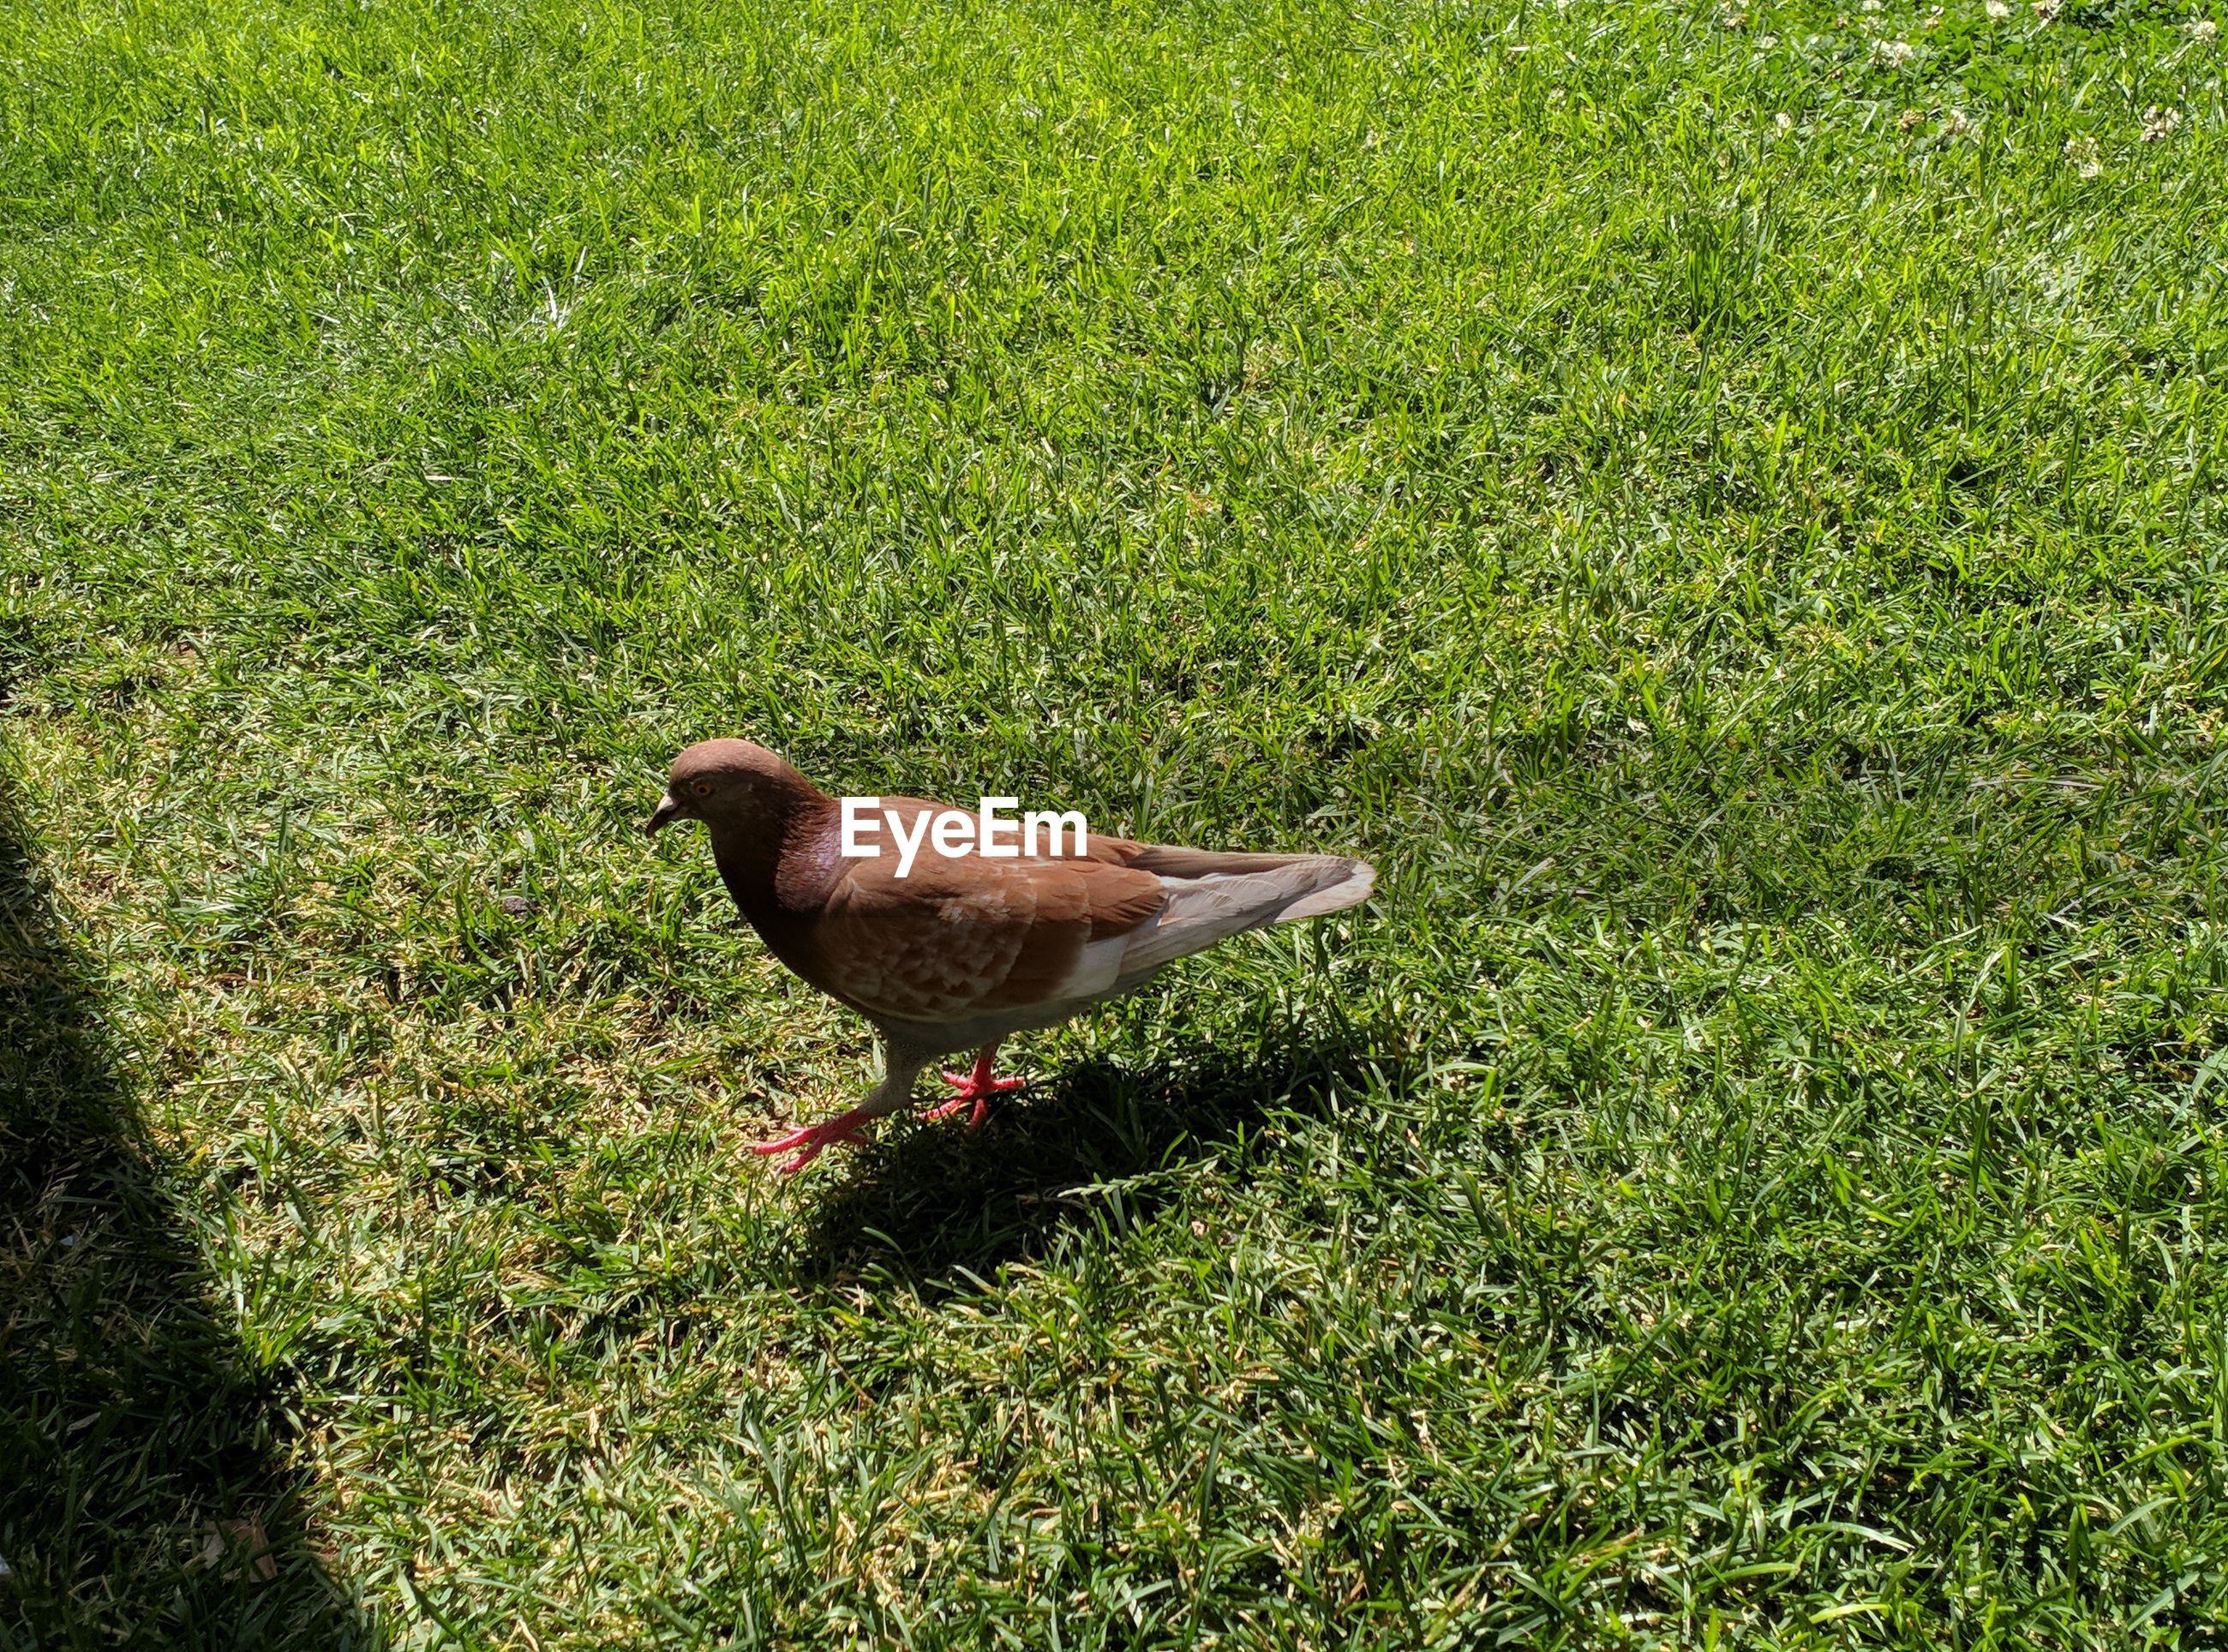 HIGH ANGLE VIEW OF BIRD ON GRASS FIELD